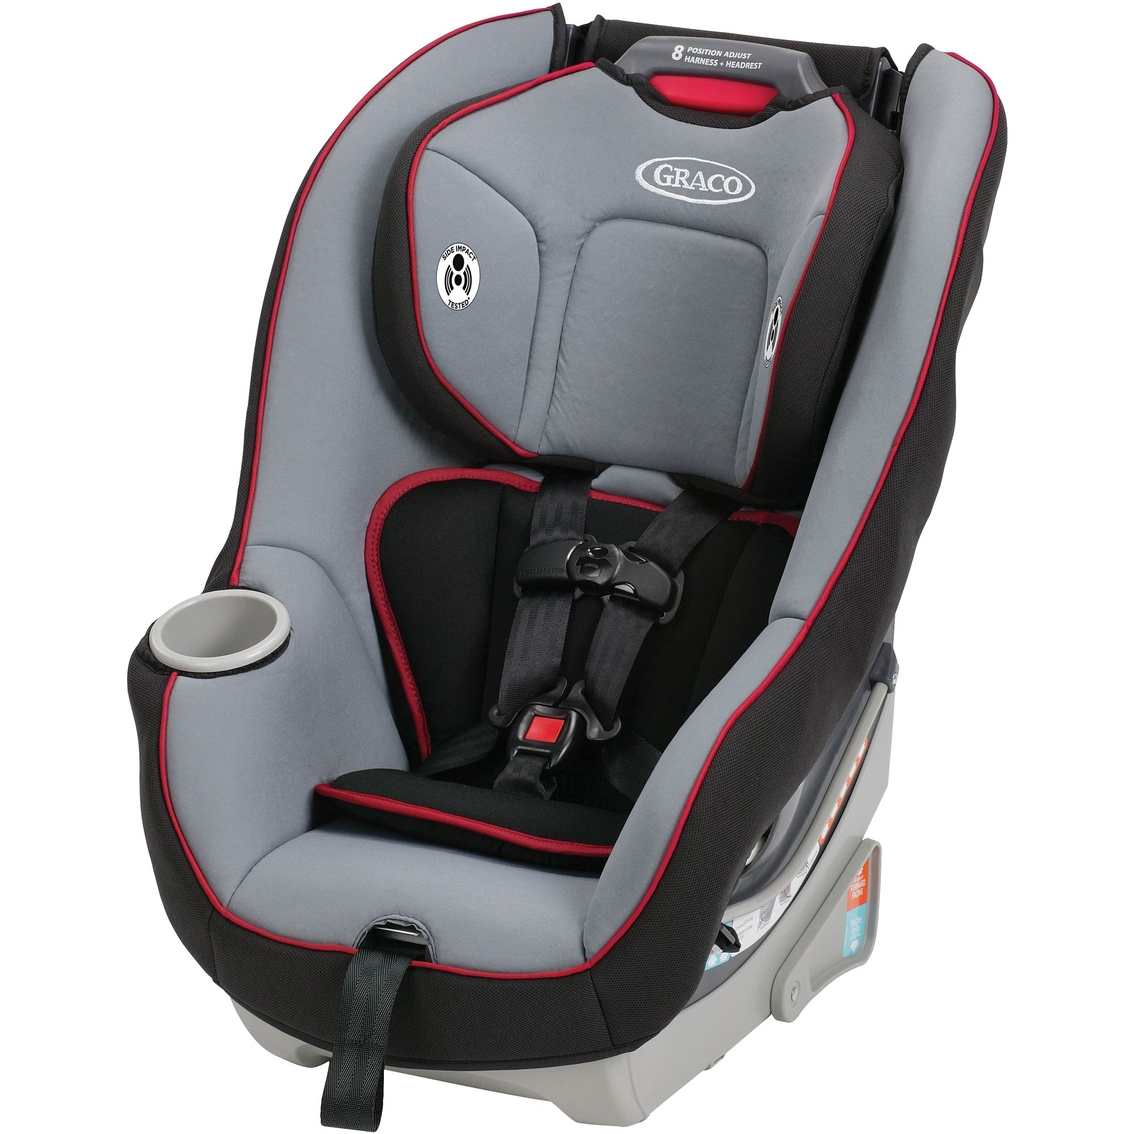 Graco Size4me 65 Convertible Car Seat Owner S Manual border=